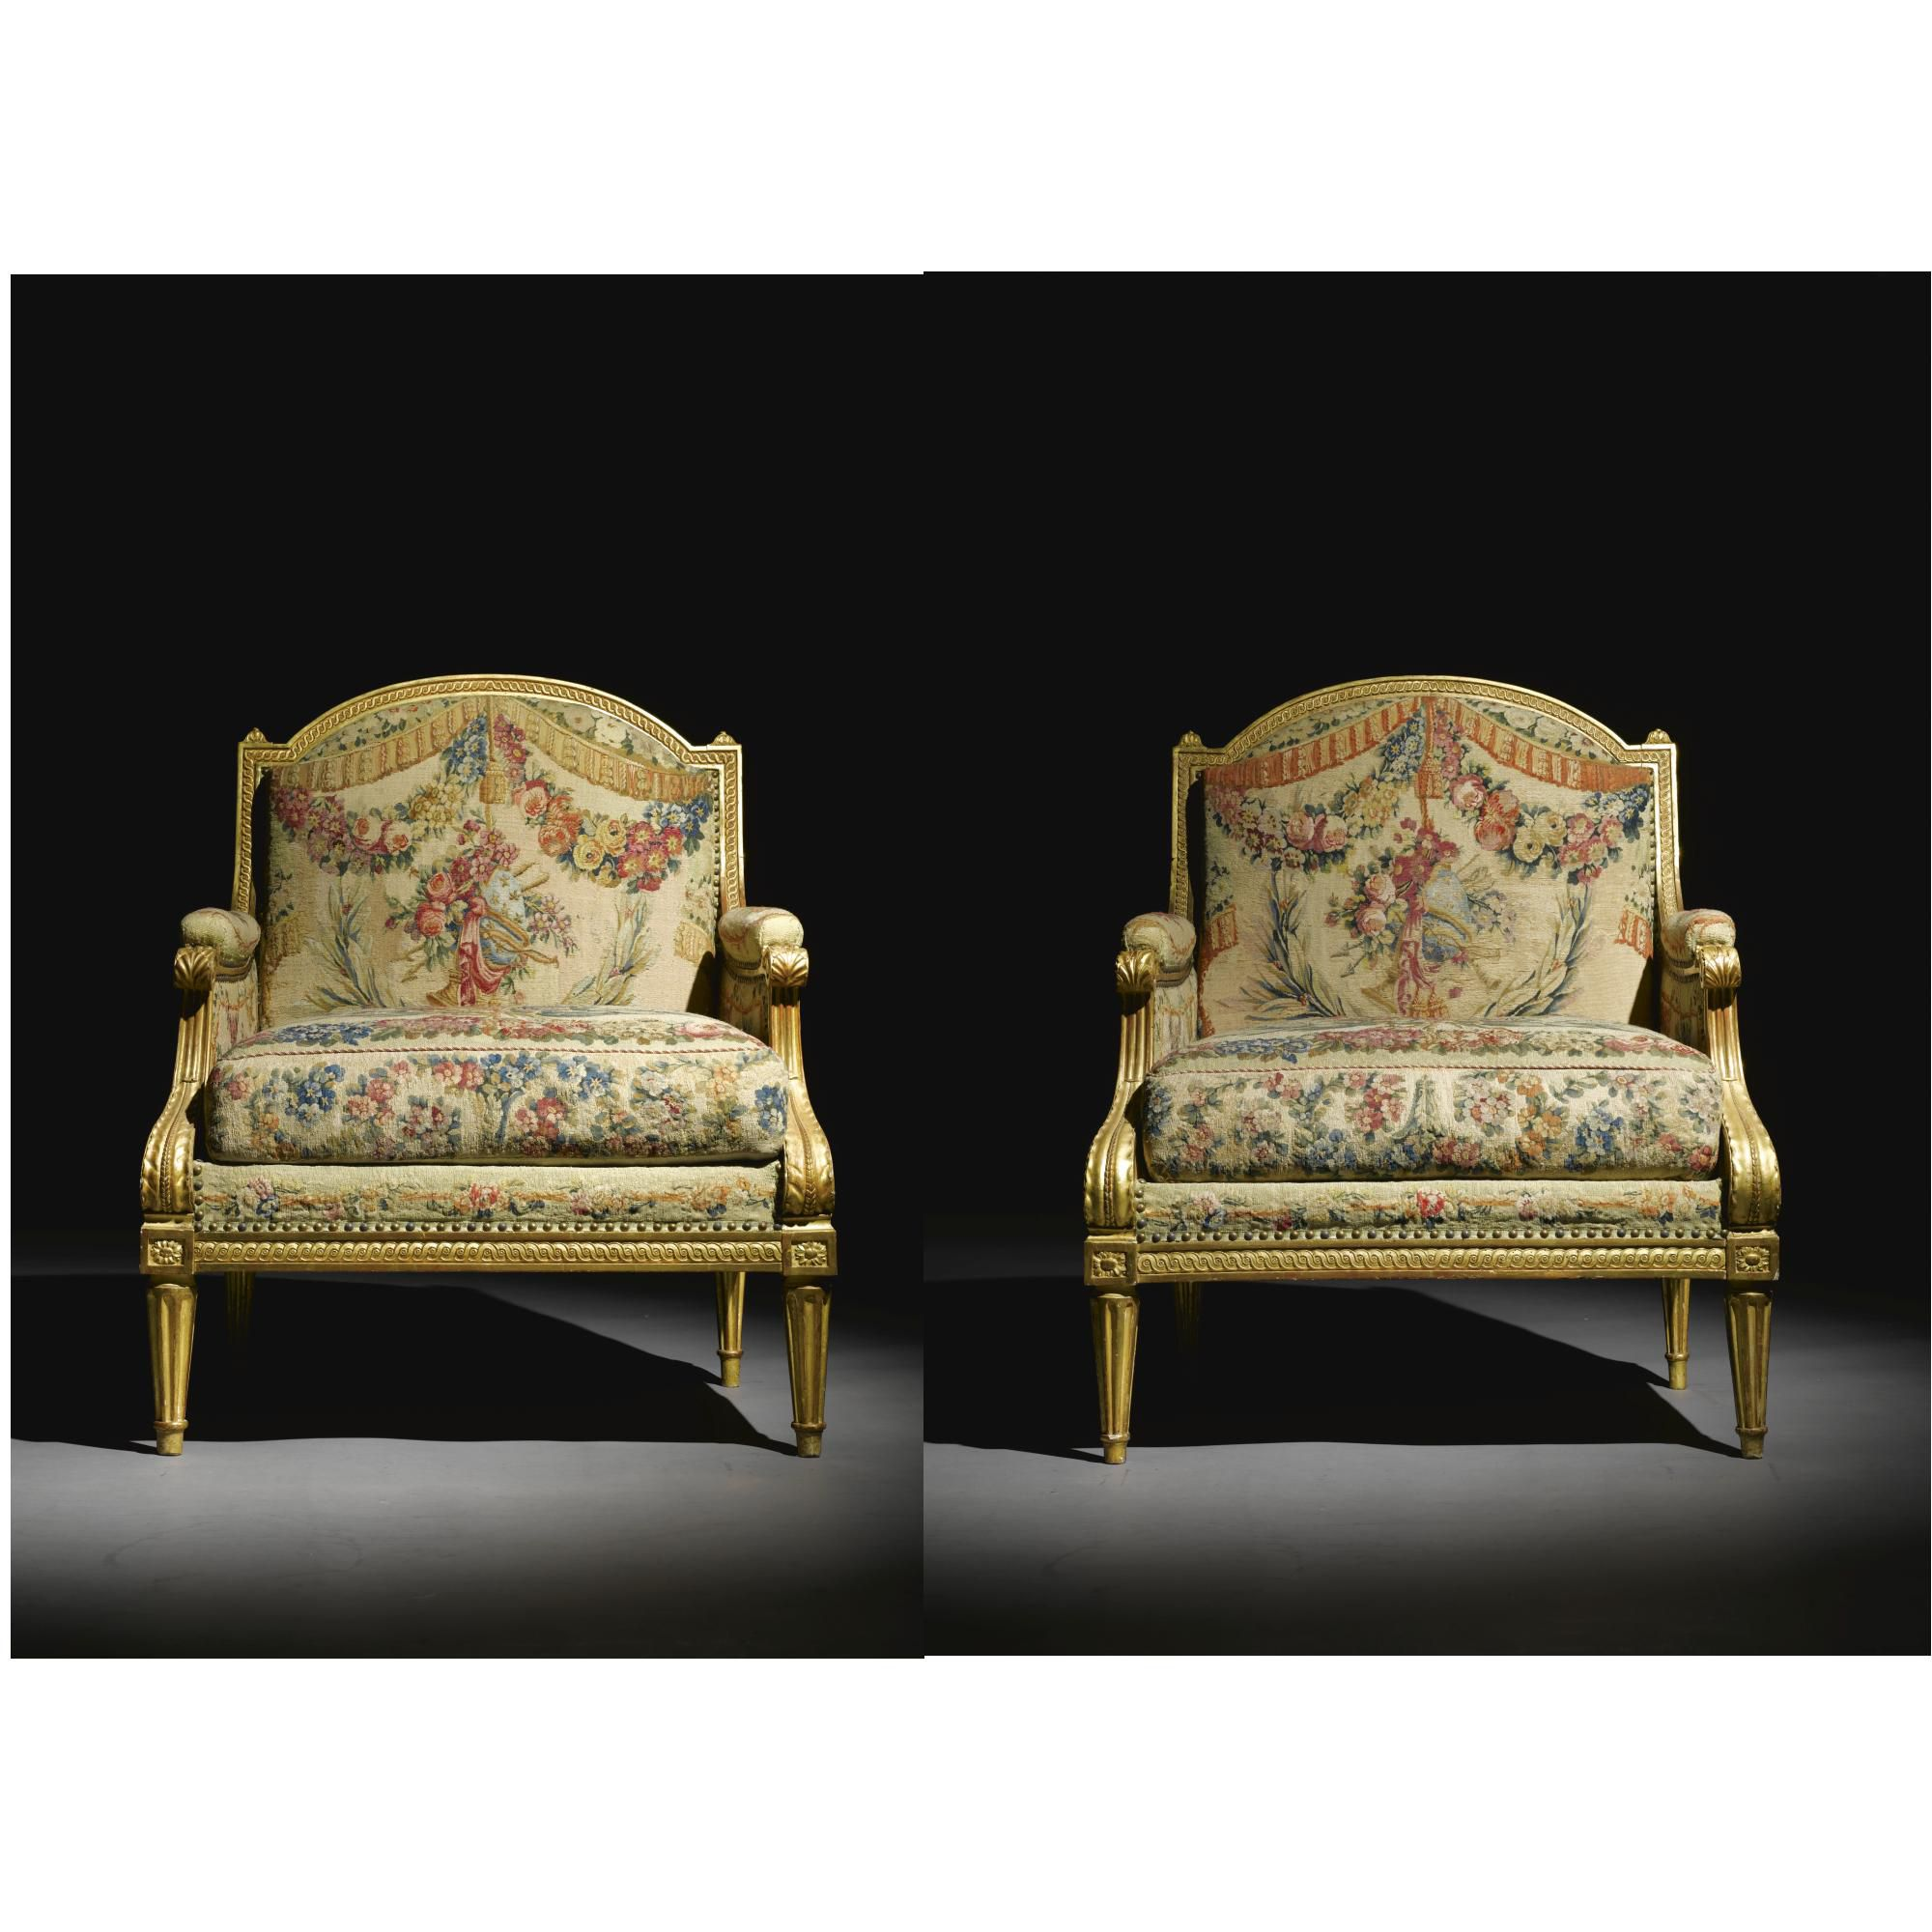 A pair of Carved Giltwood and Beauvais Tapestry upholstered marquises each stamped C.Sené, Louis XVI, circa 1780.